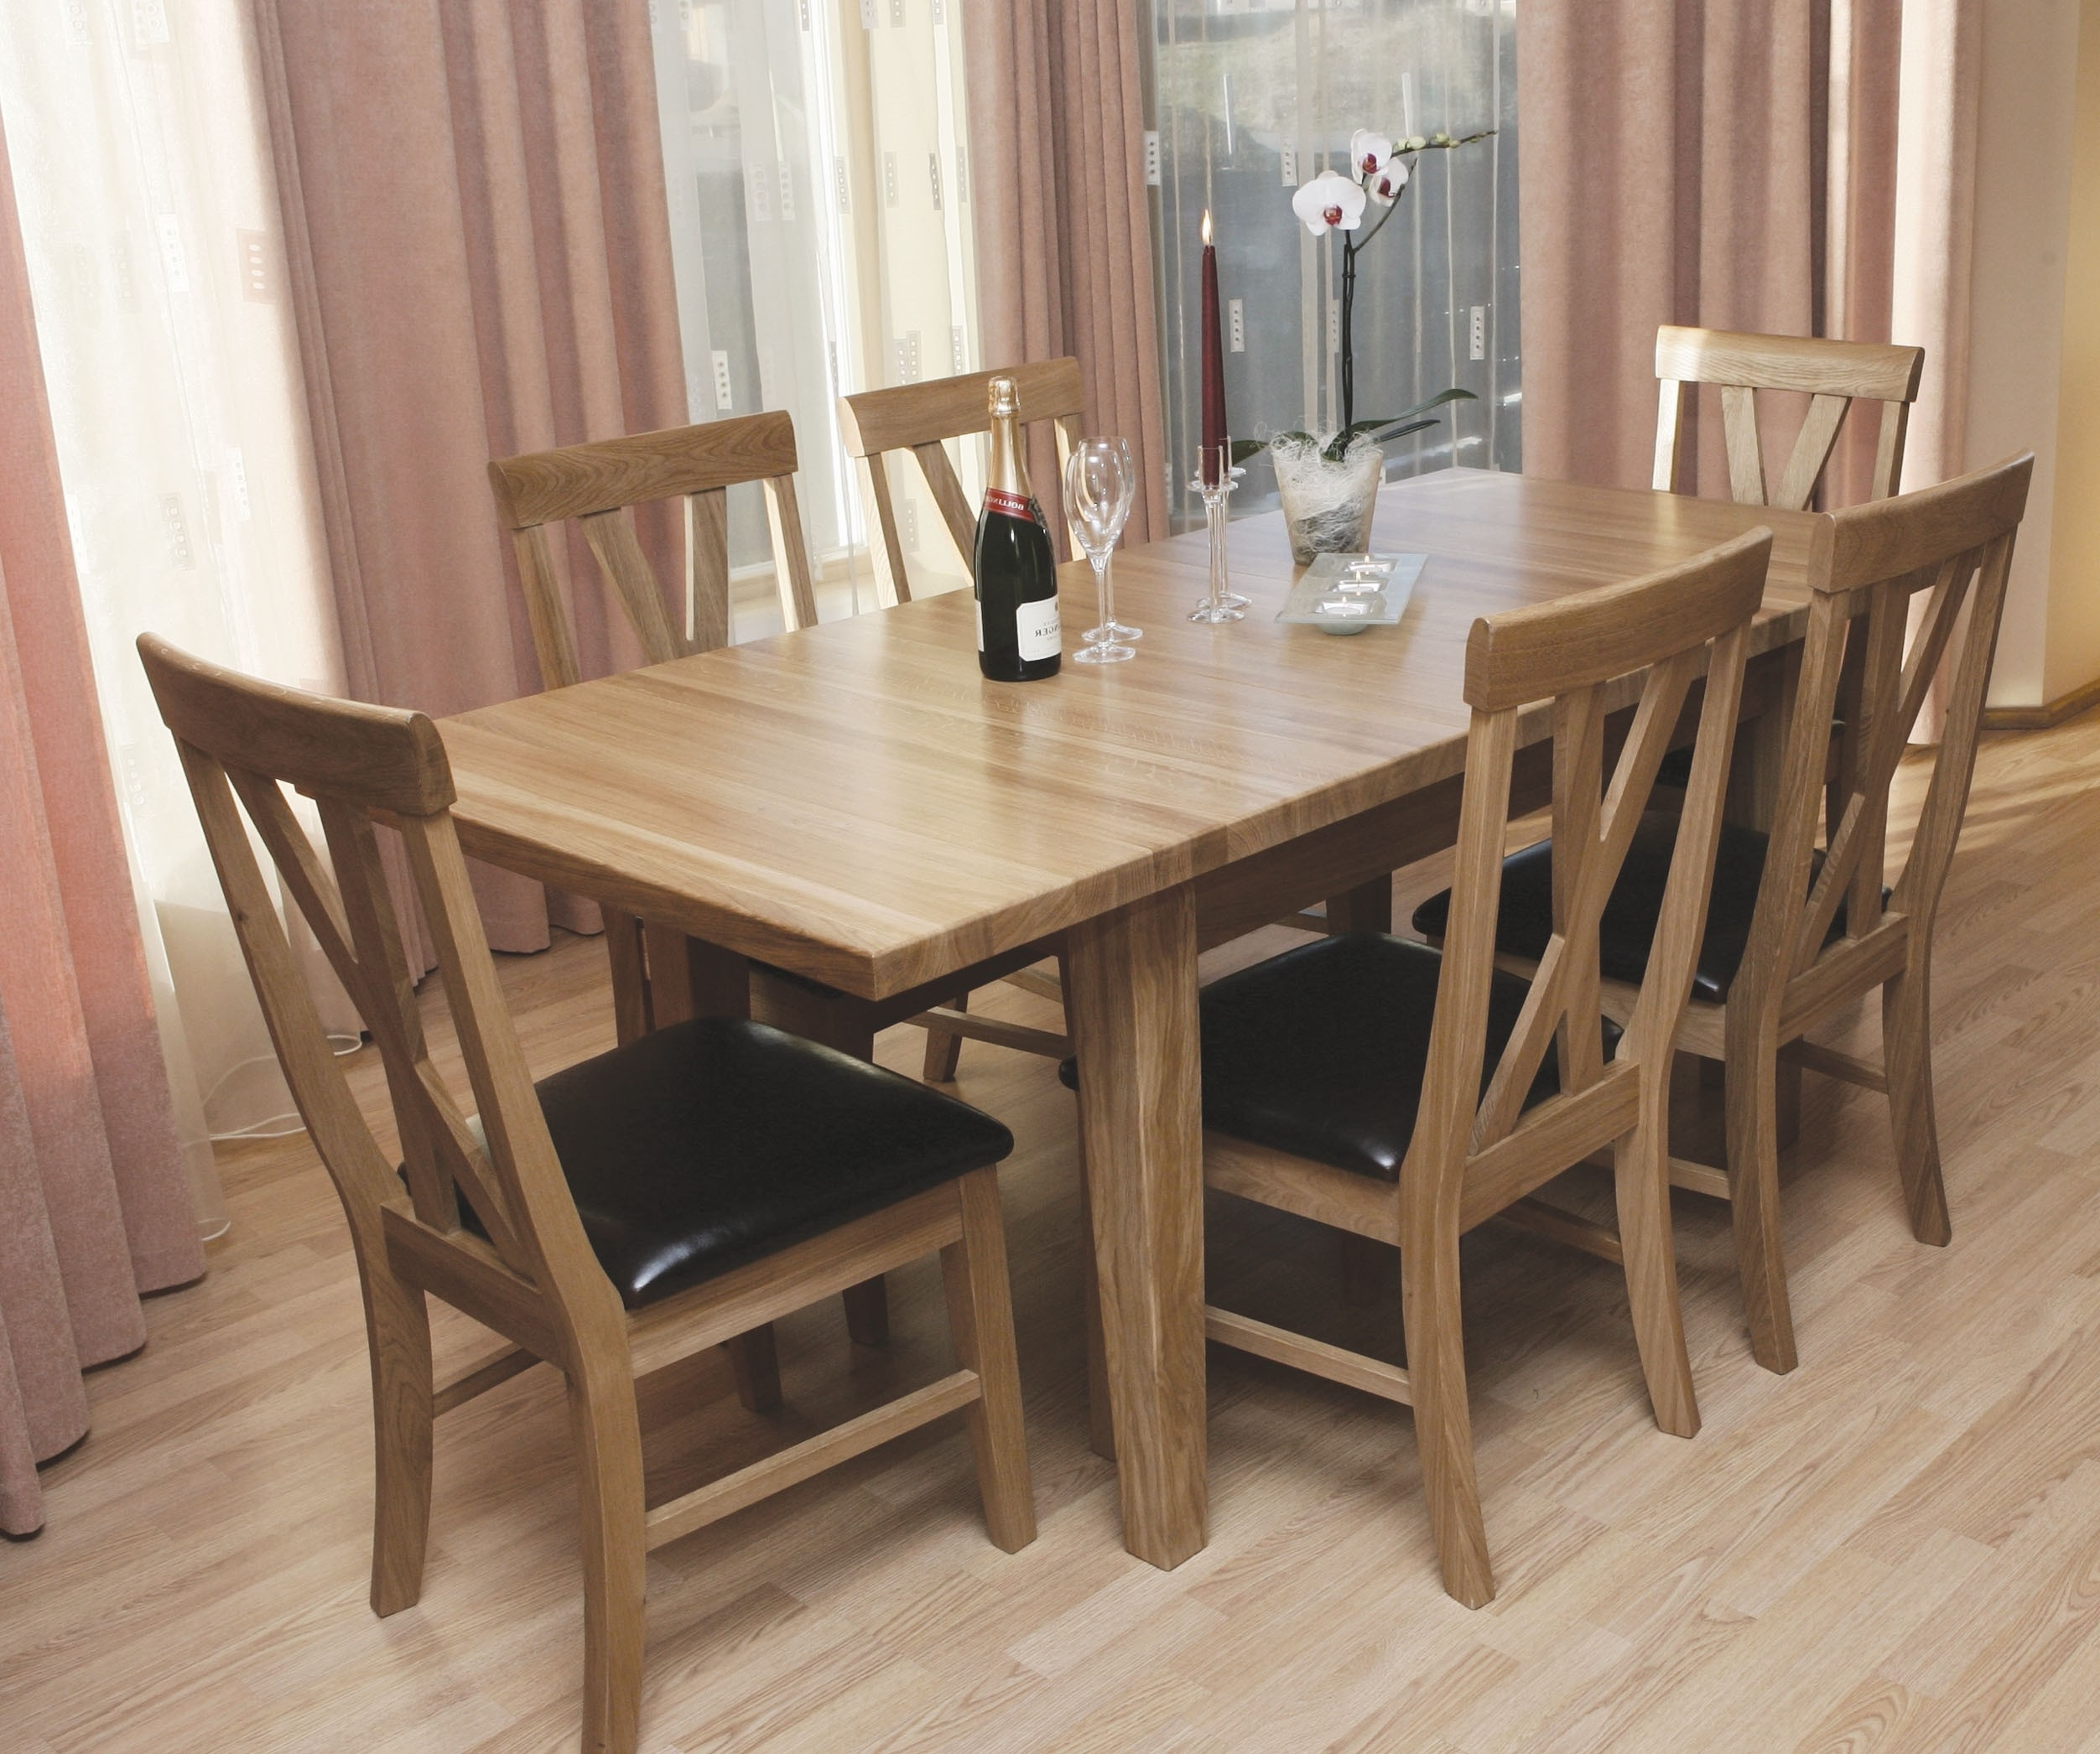 6 Seat Dining Tables And Chairs With Best And Newest Tch Warwick 6 Seat Dining Table & Chairs Set Solid Oak – Furniture (View 4 of 25)